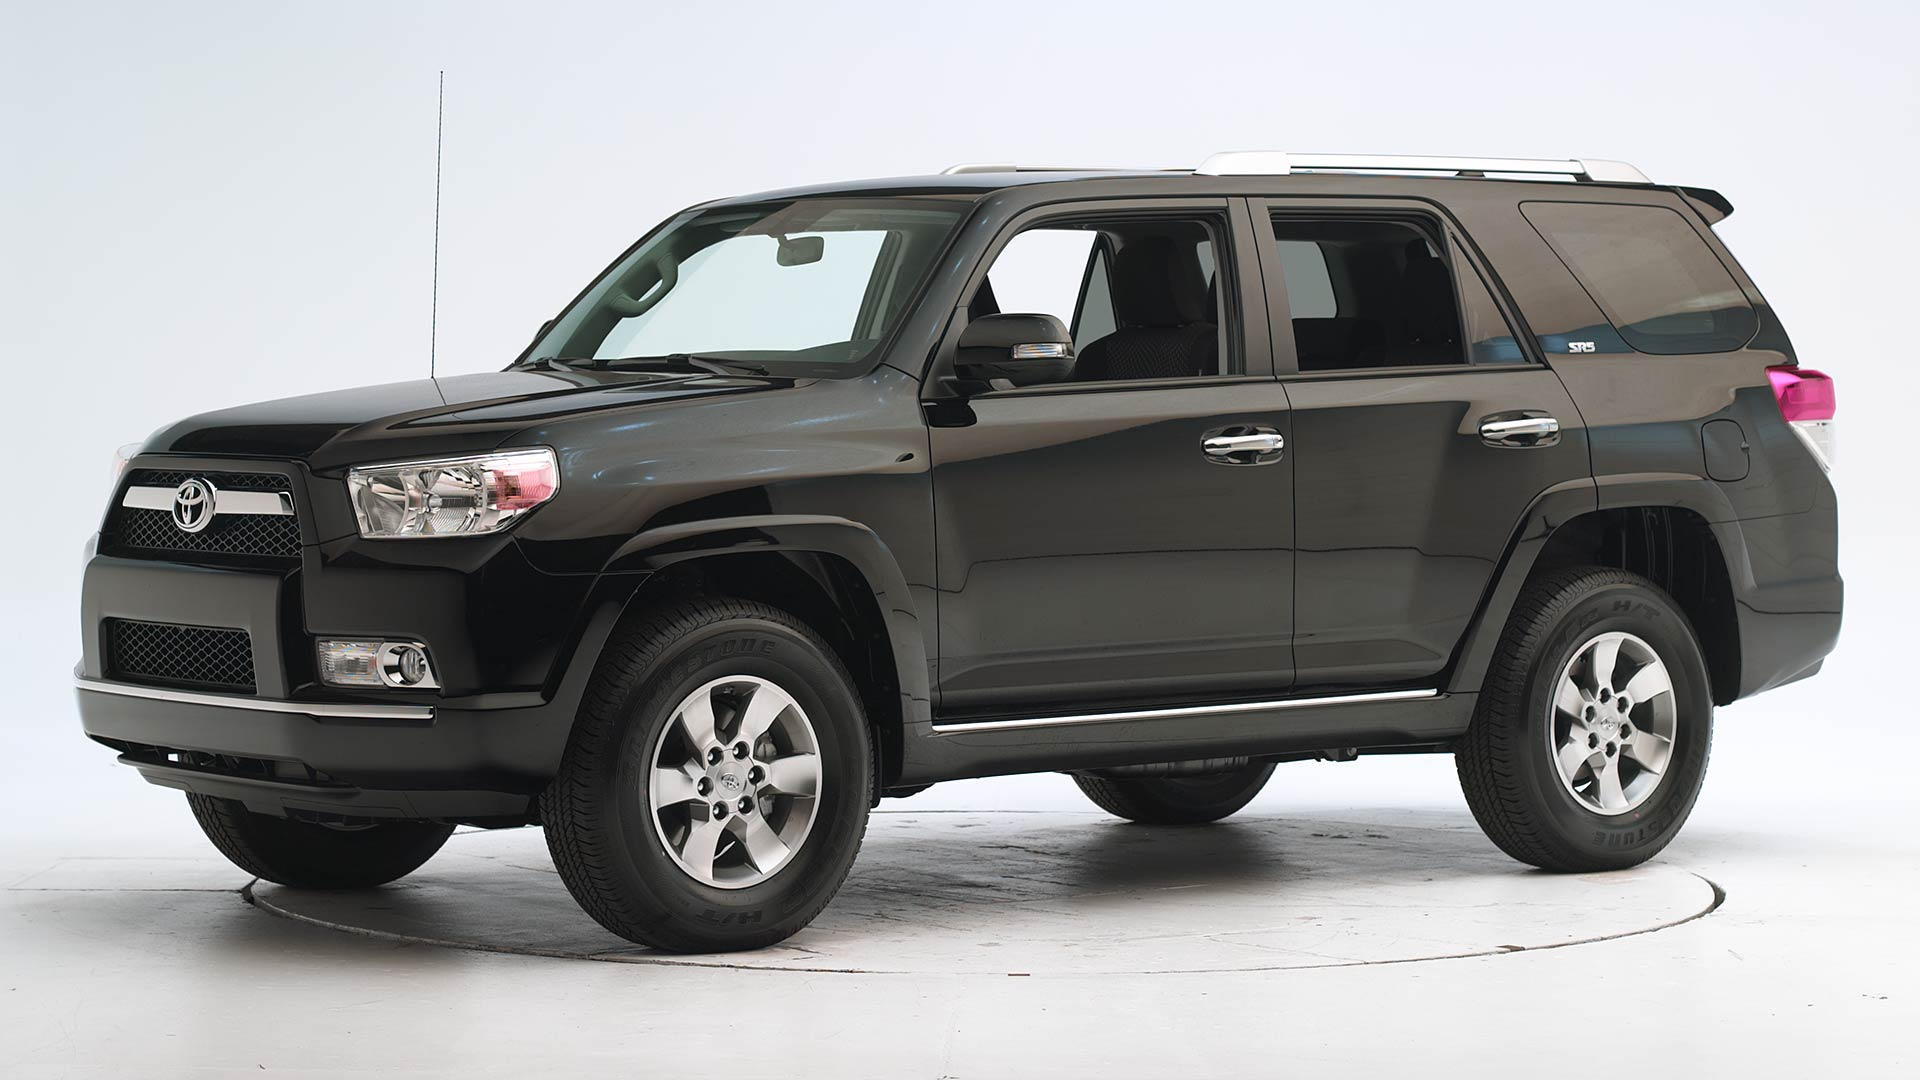 2013 Toyota 4Runner 4-door SUV